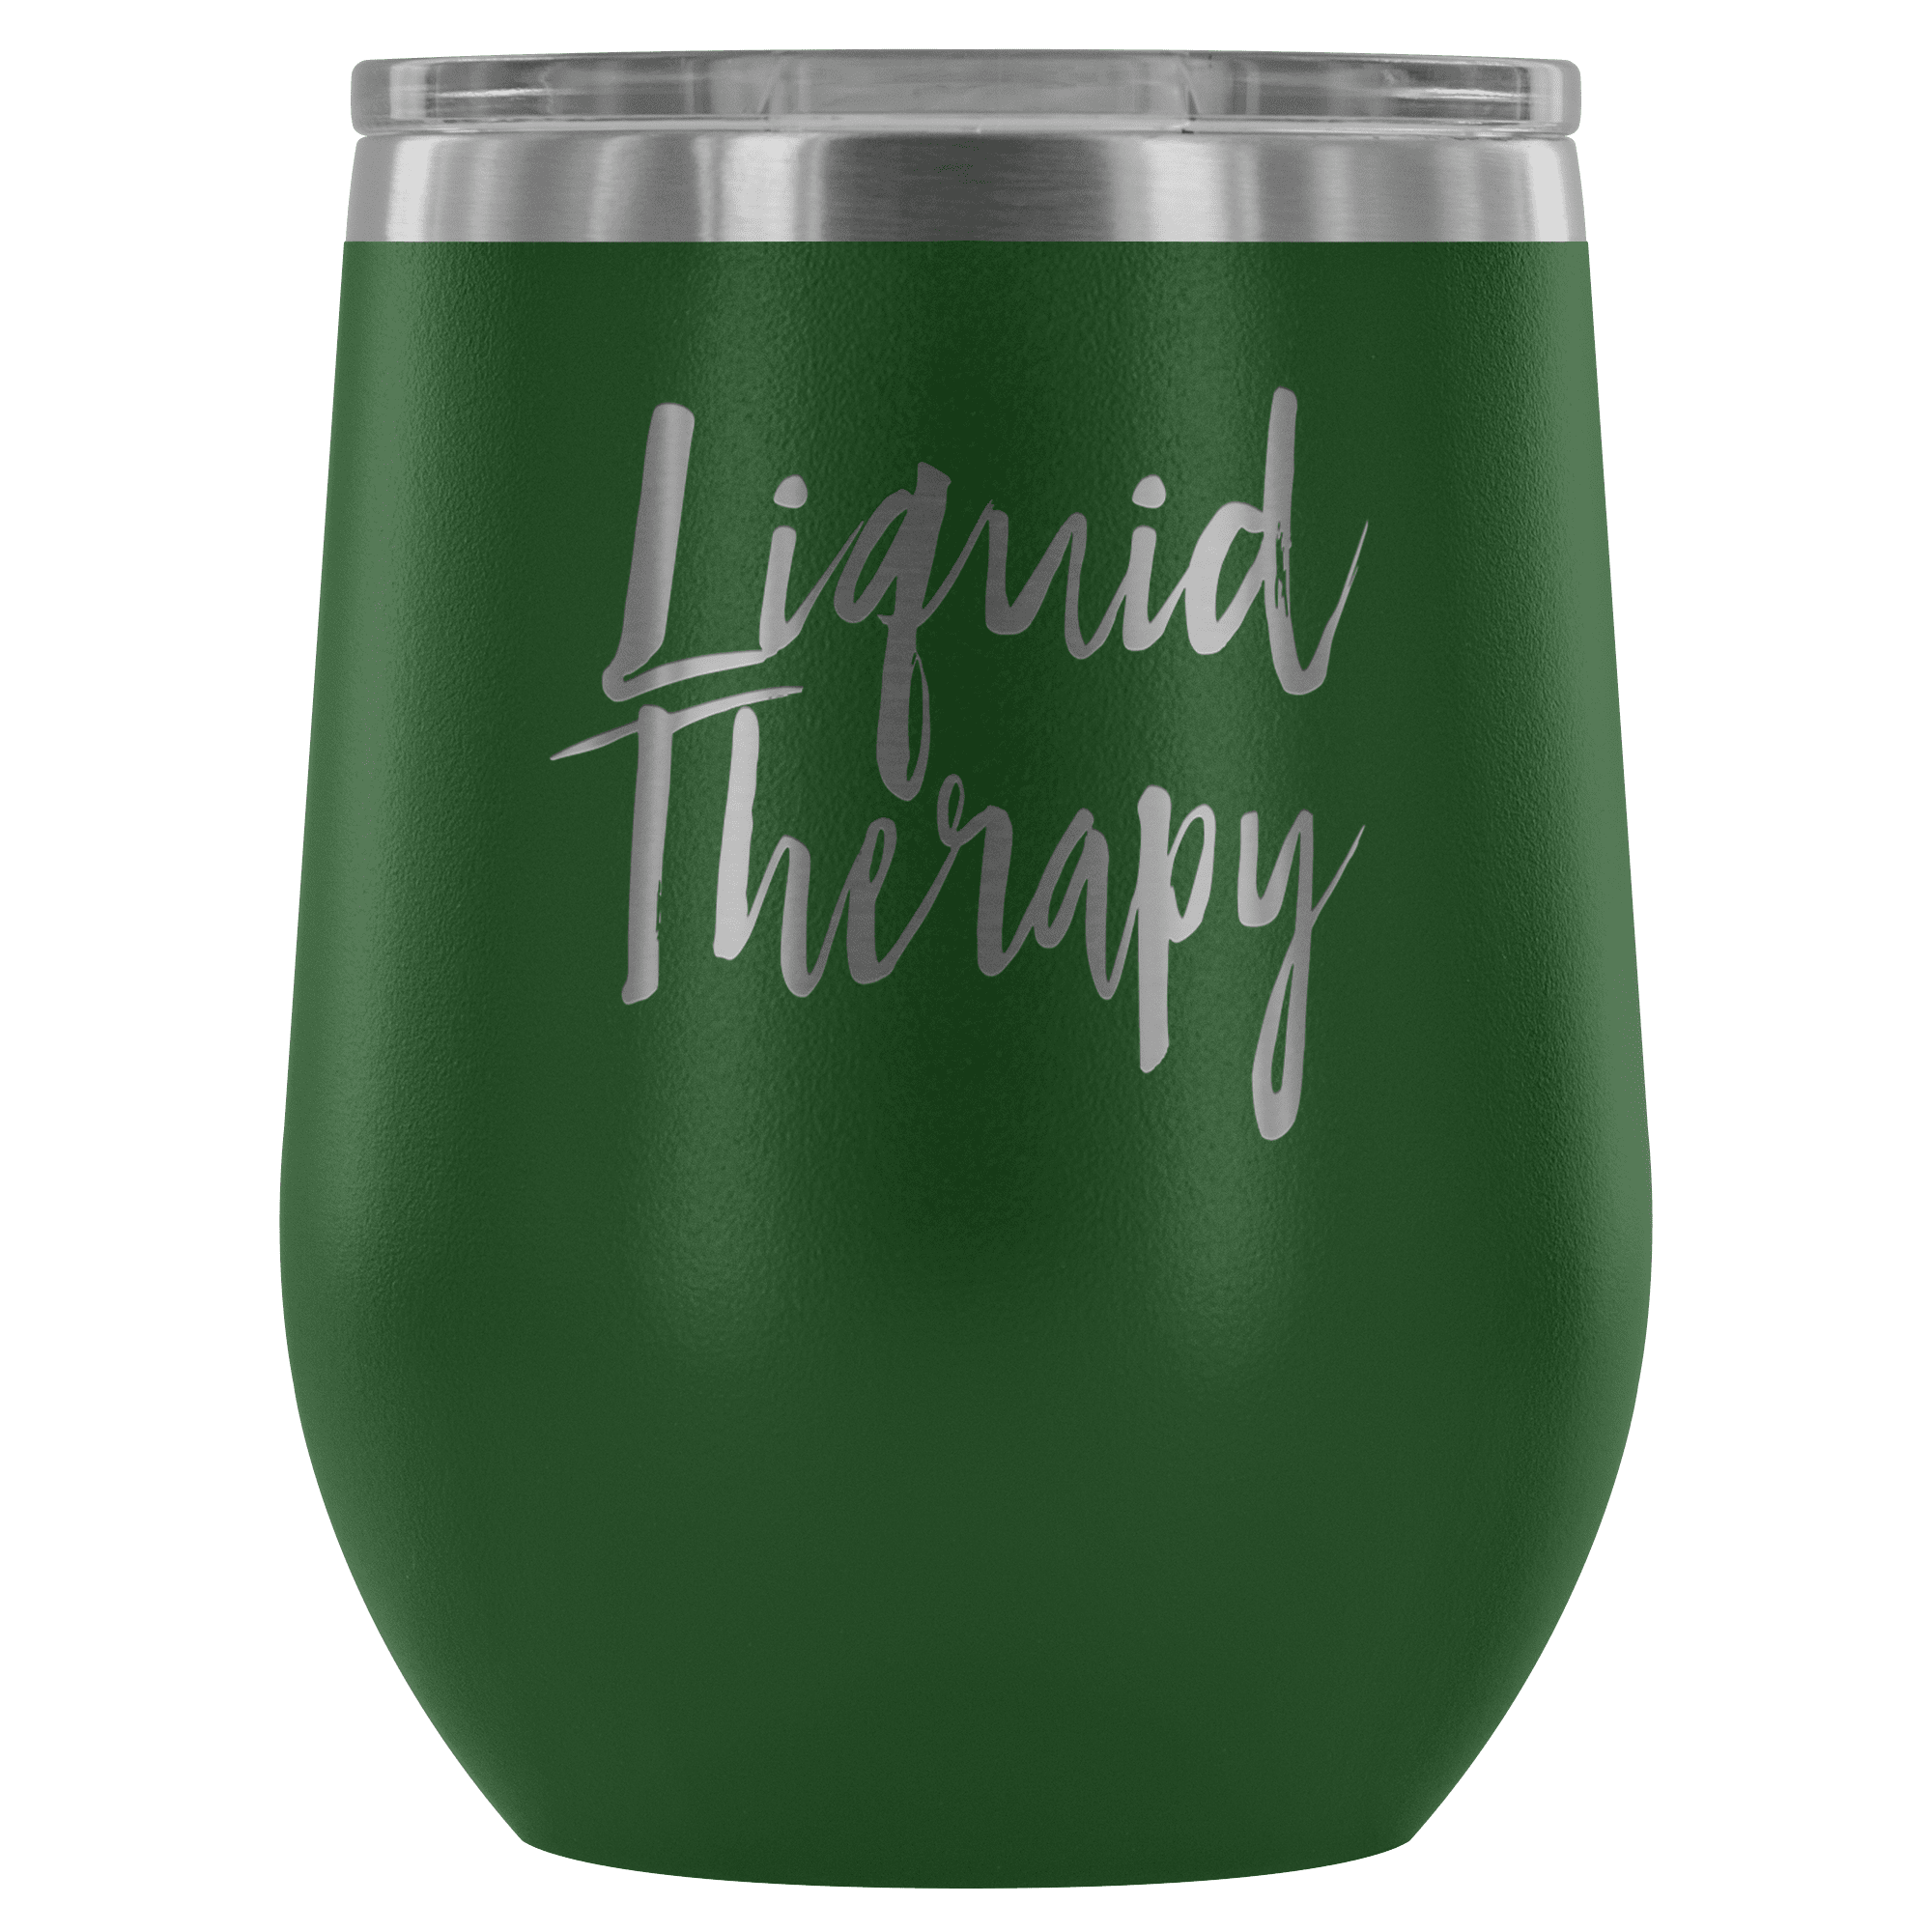 Liquid Therapy Stemless Wine Cup